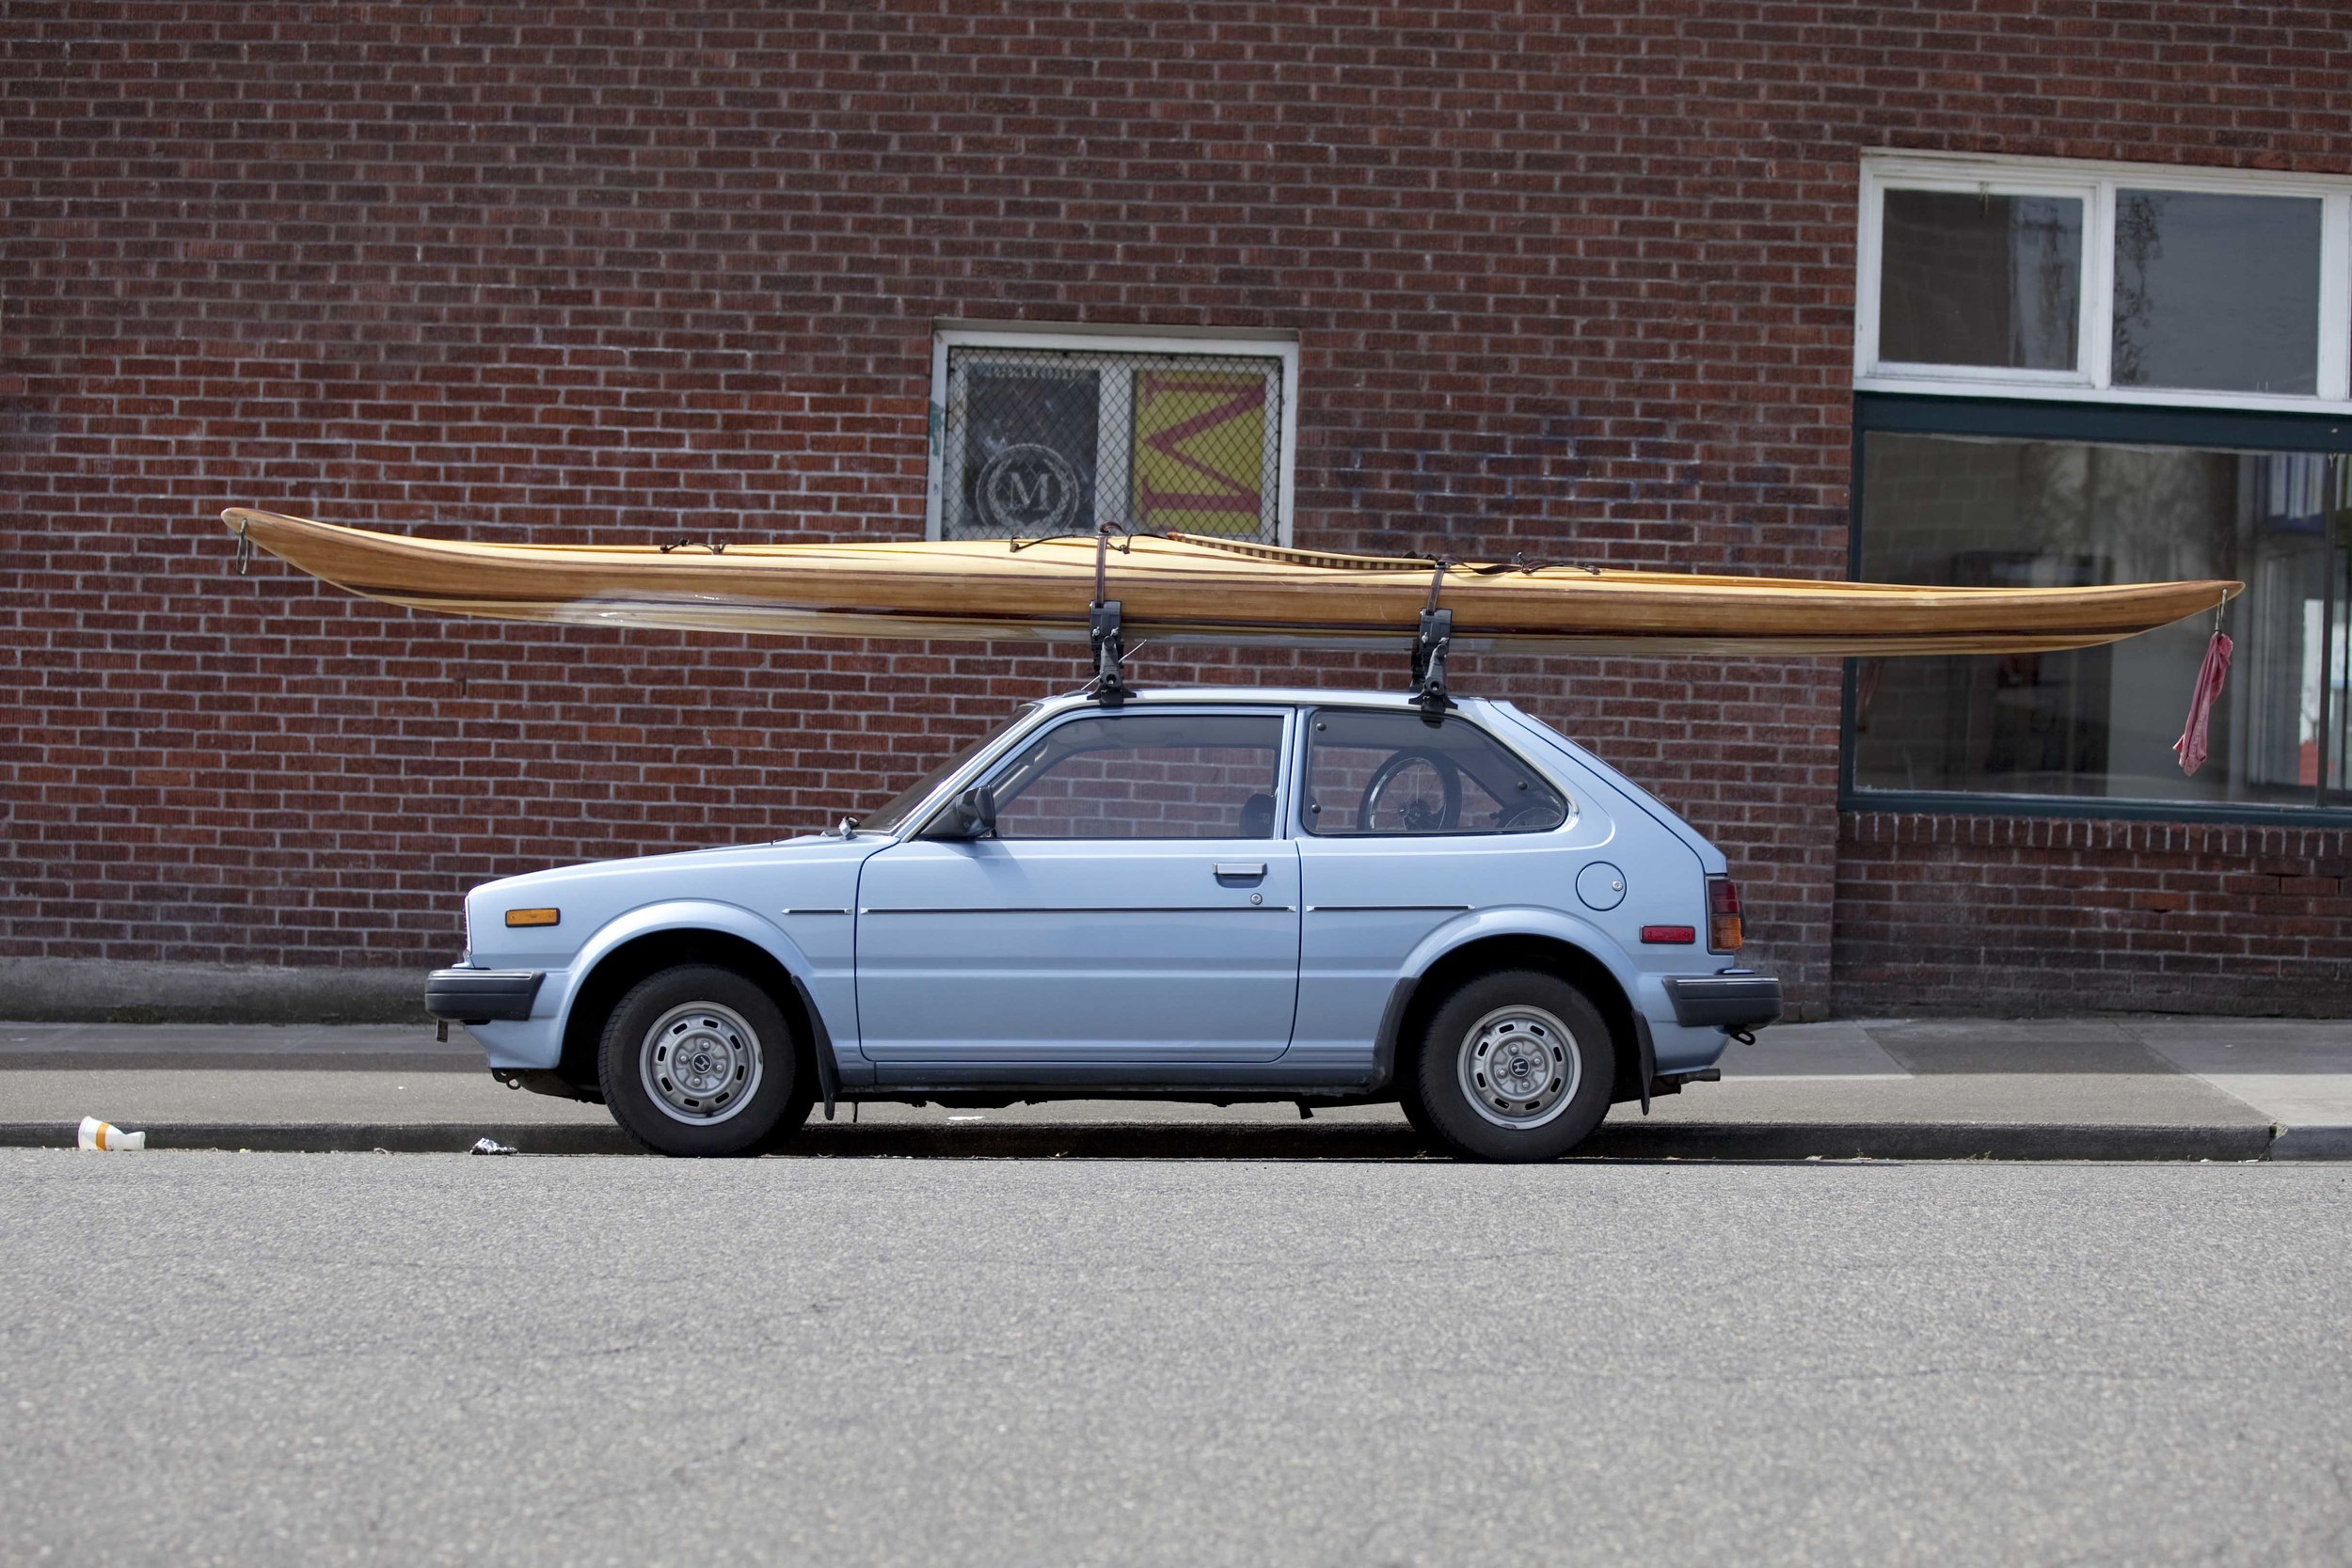 hatchback_kayak.jpg